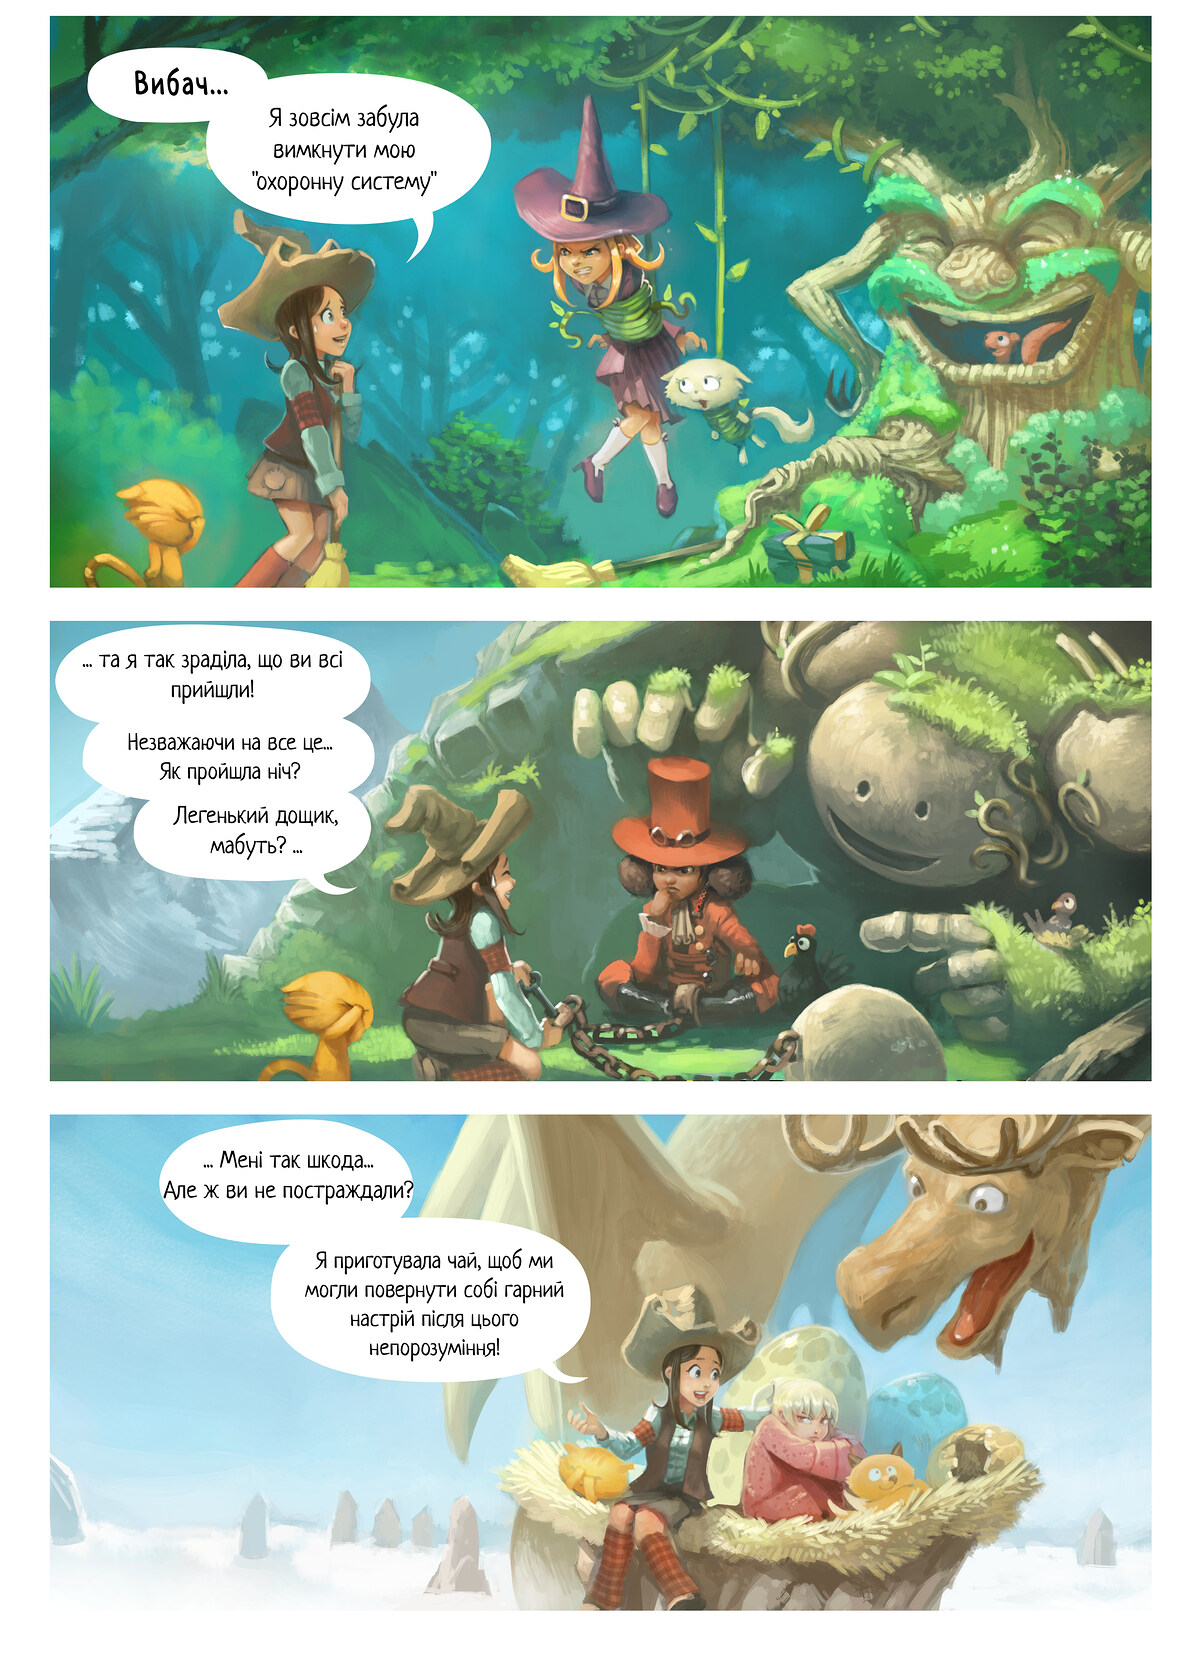 A webcomic page of Pepper&Carrot, епізод 9 [uk], стор. 2